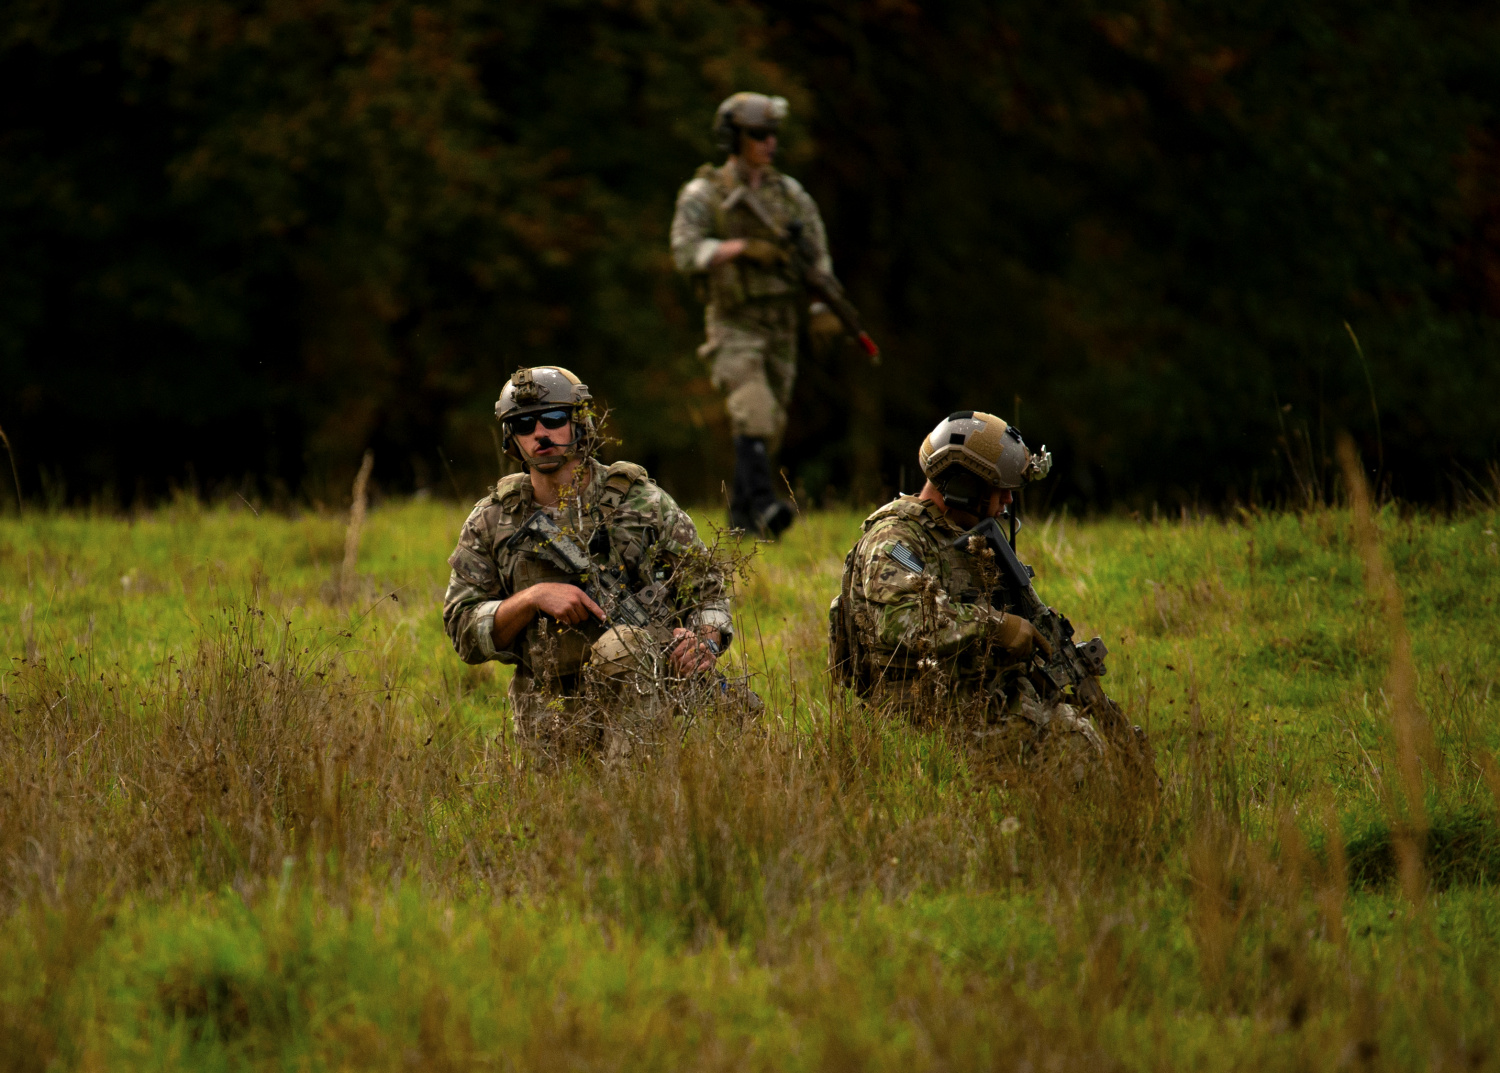 POTD: U.S. Special Forces in Germany